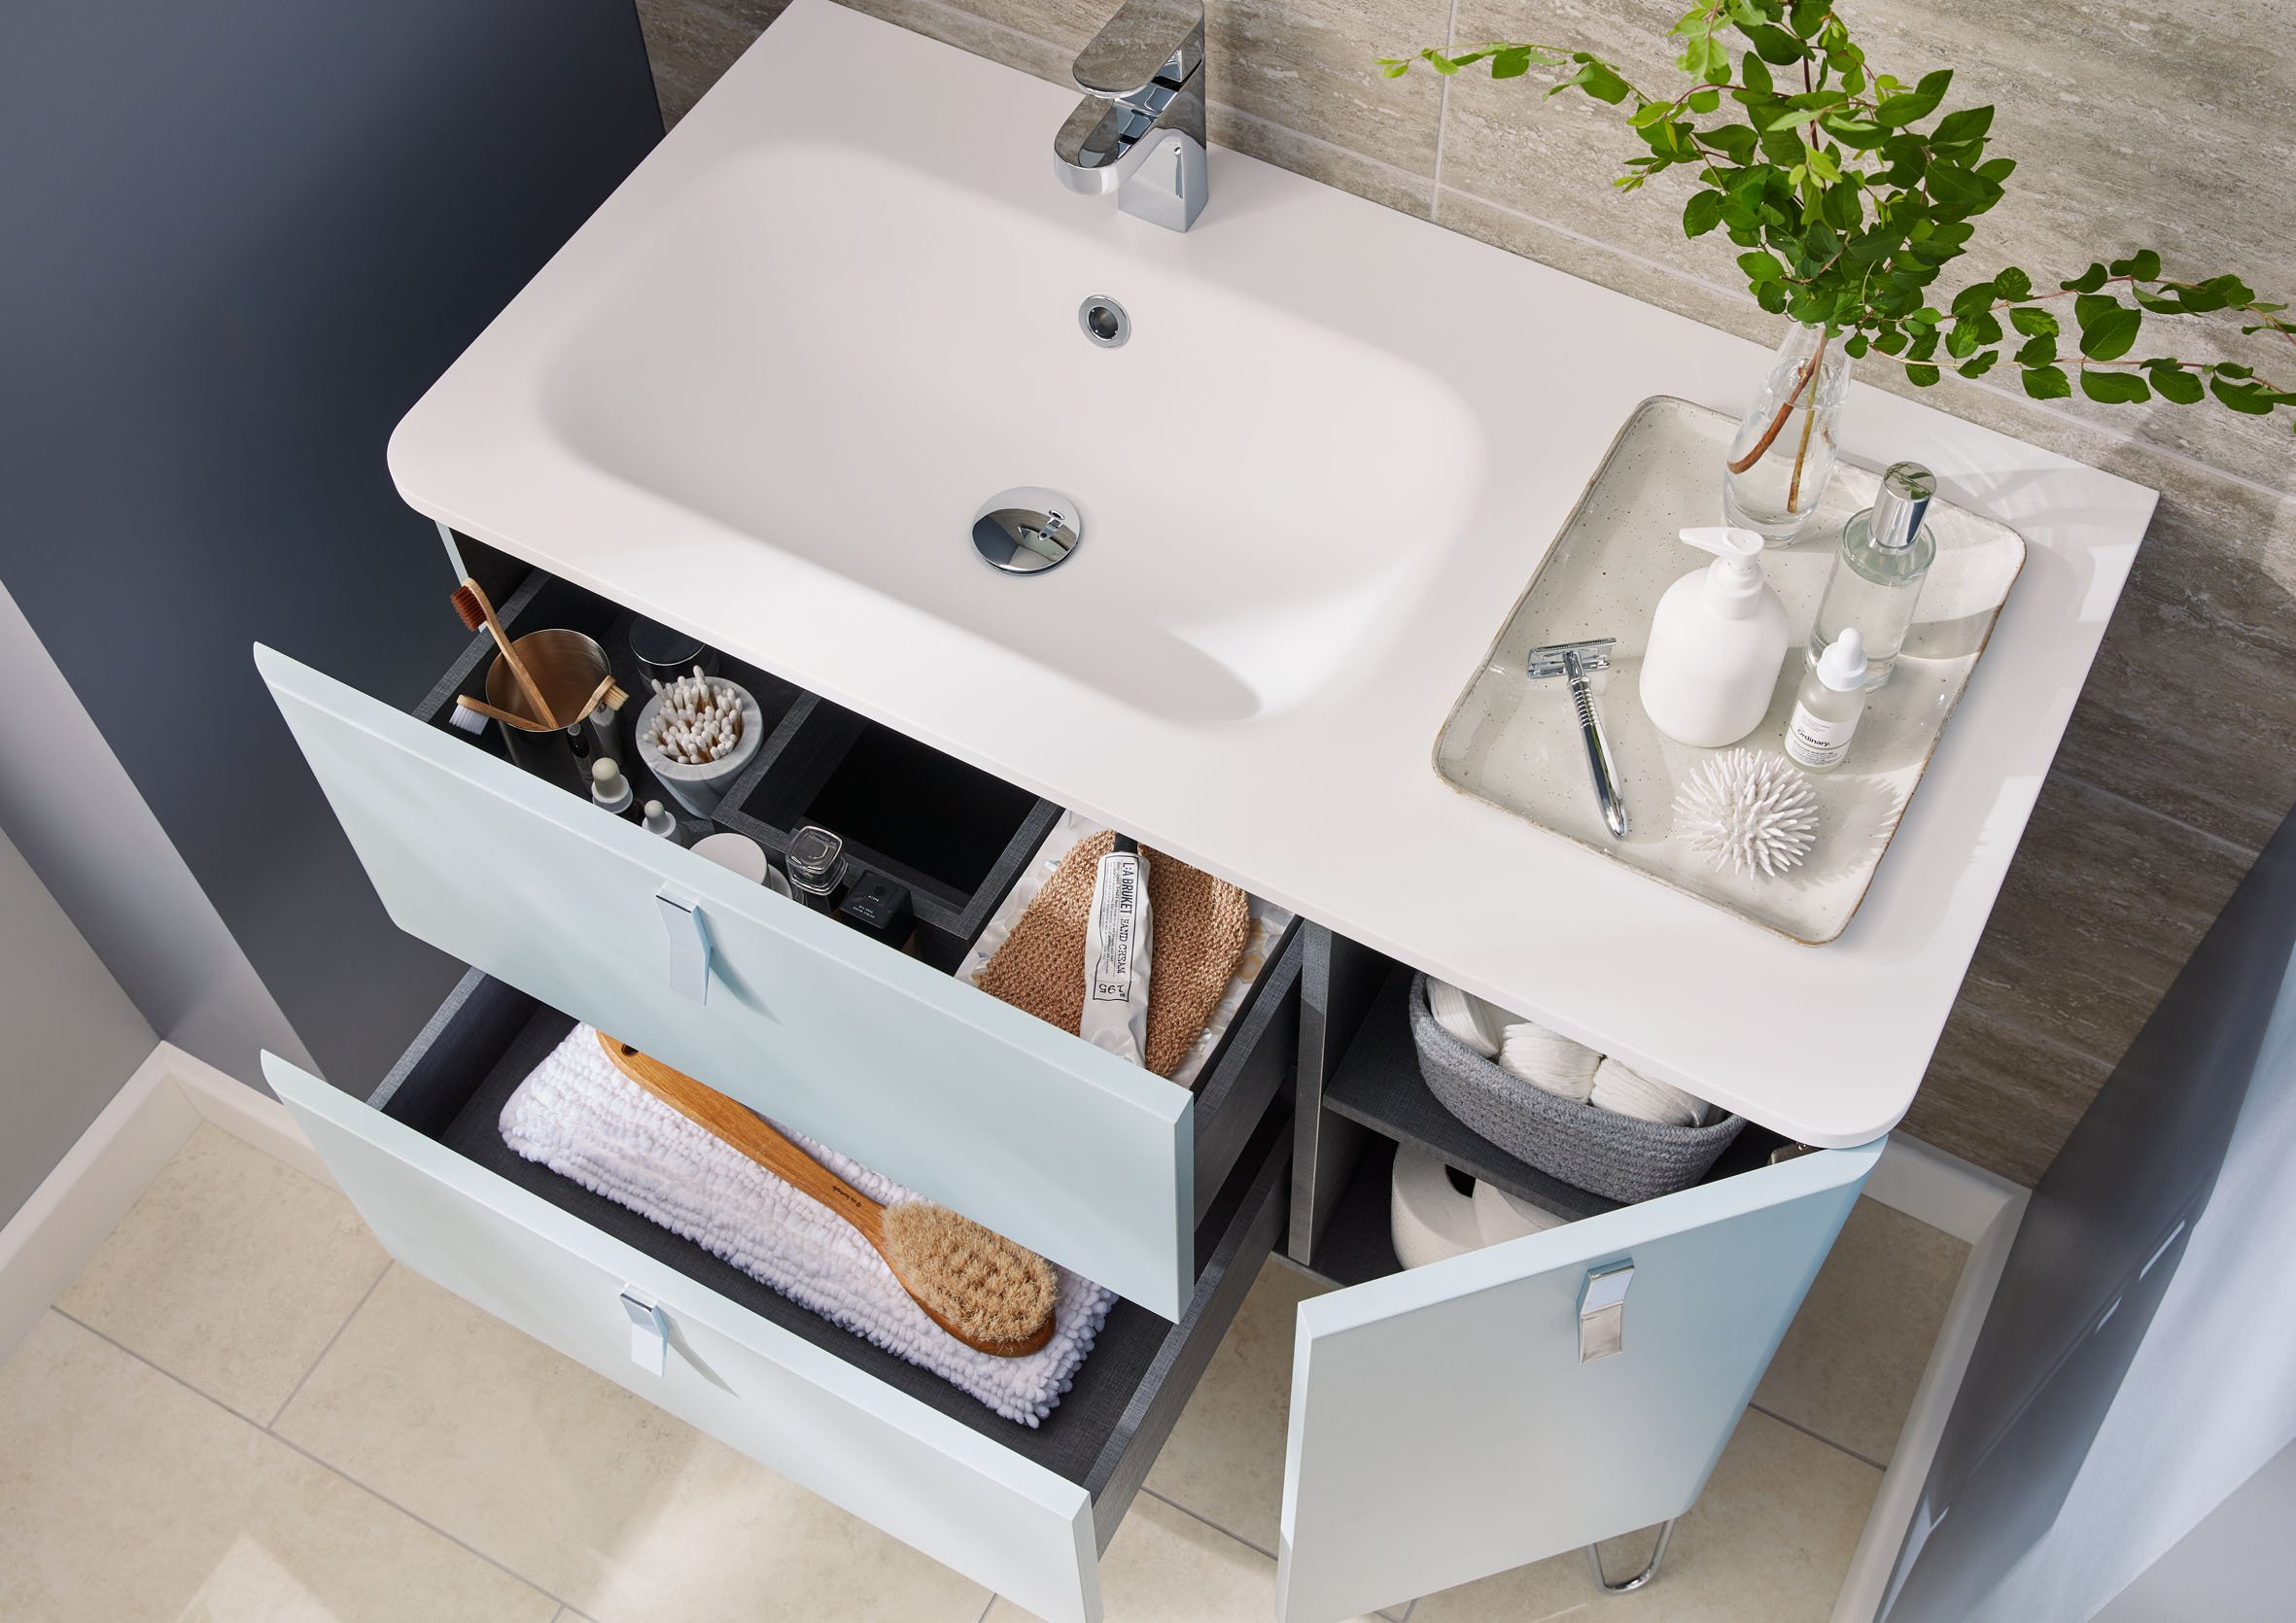 How Can I Increase the Storage in my Bathroom?